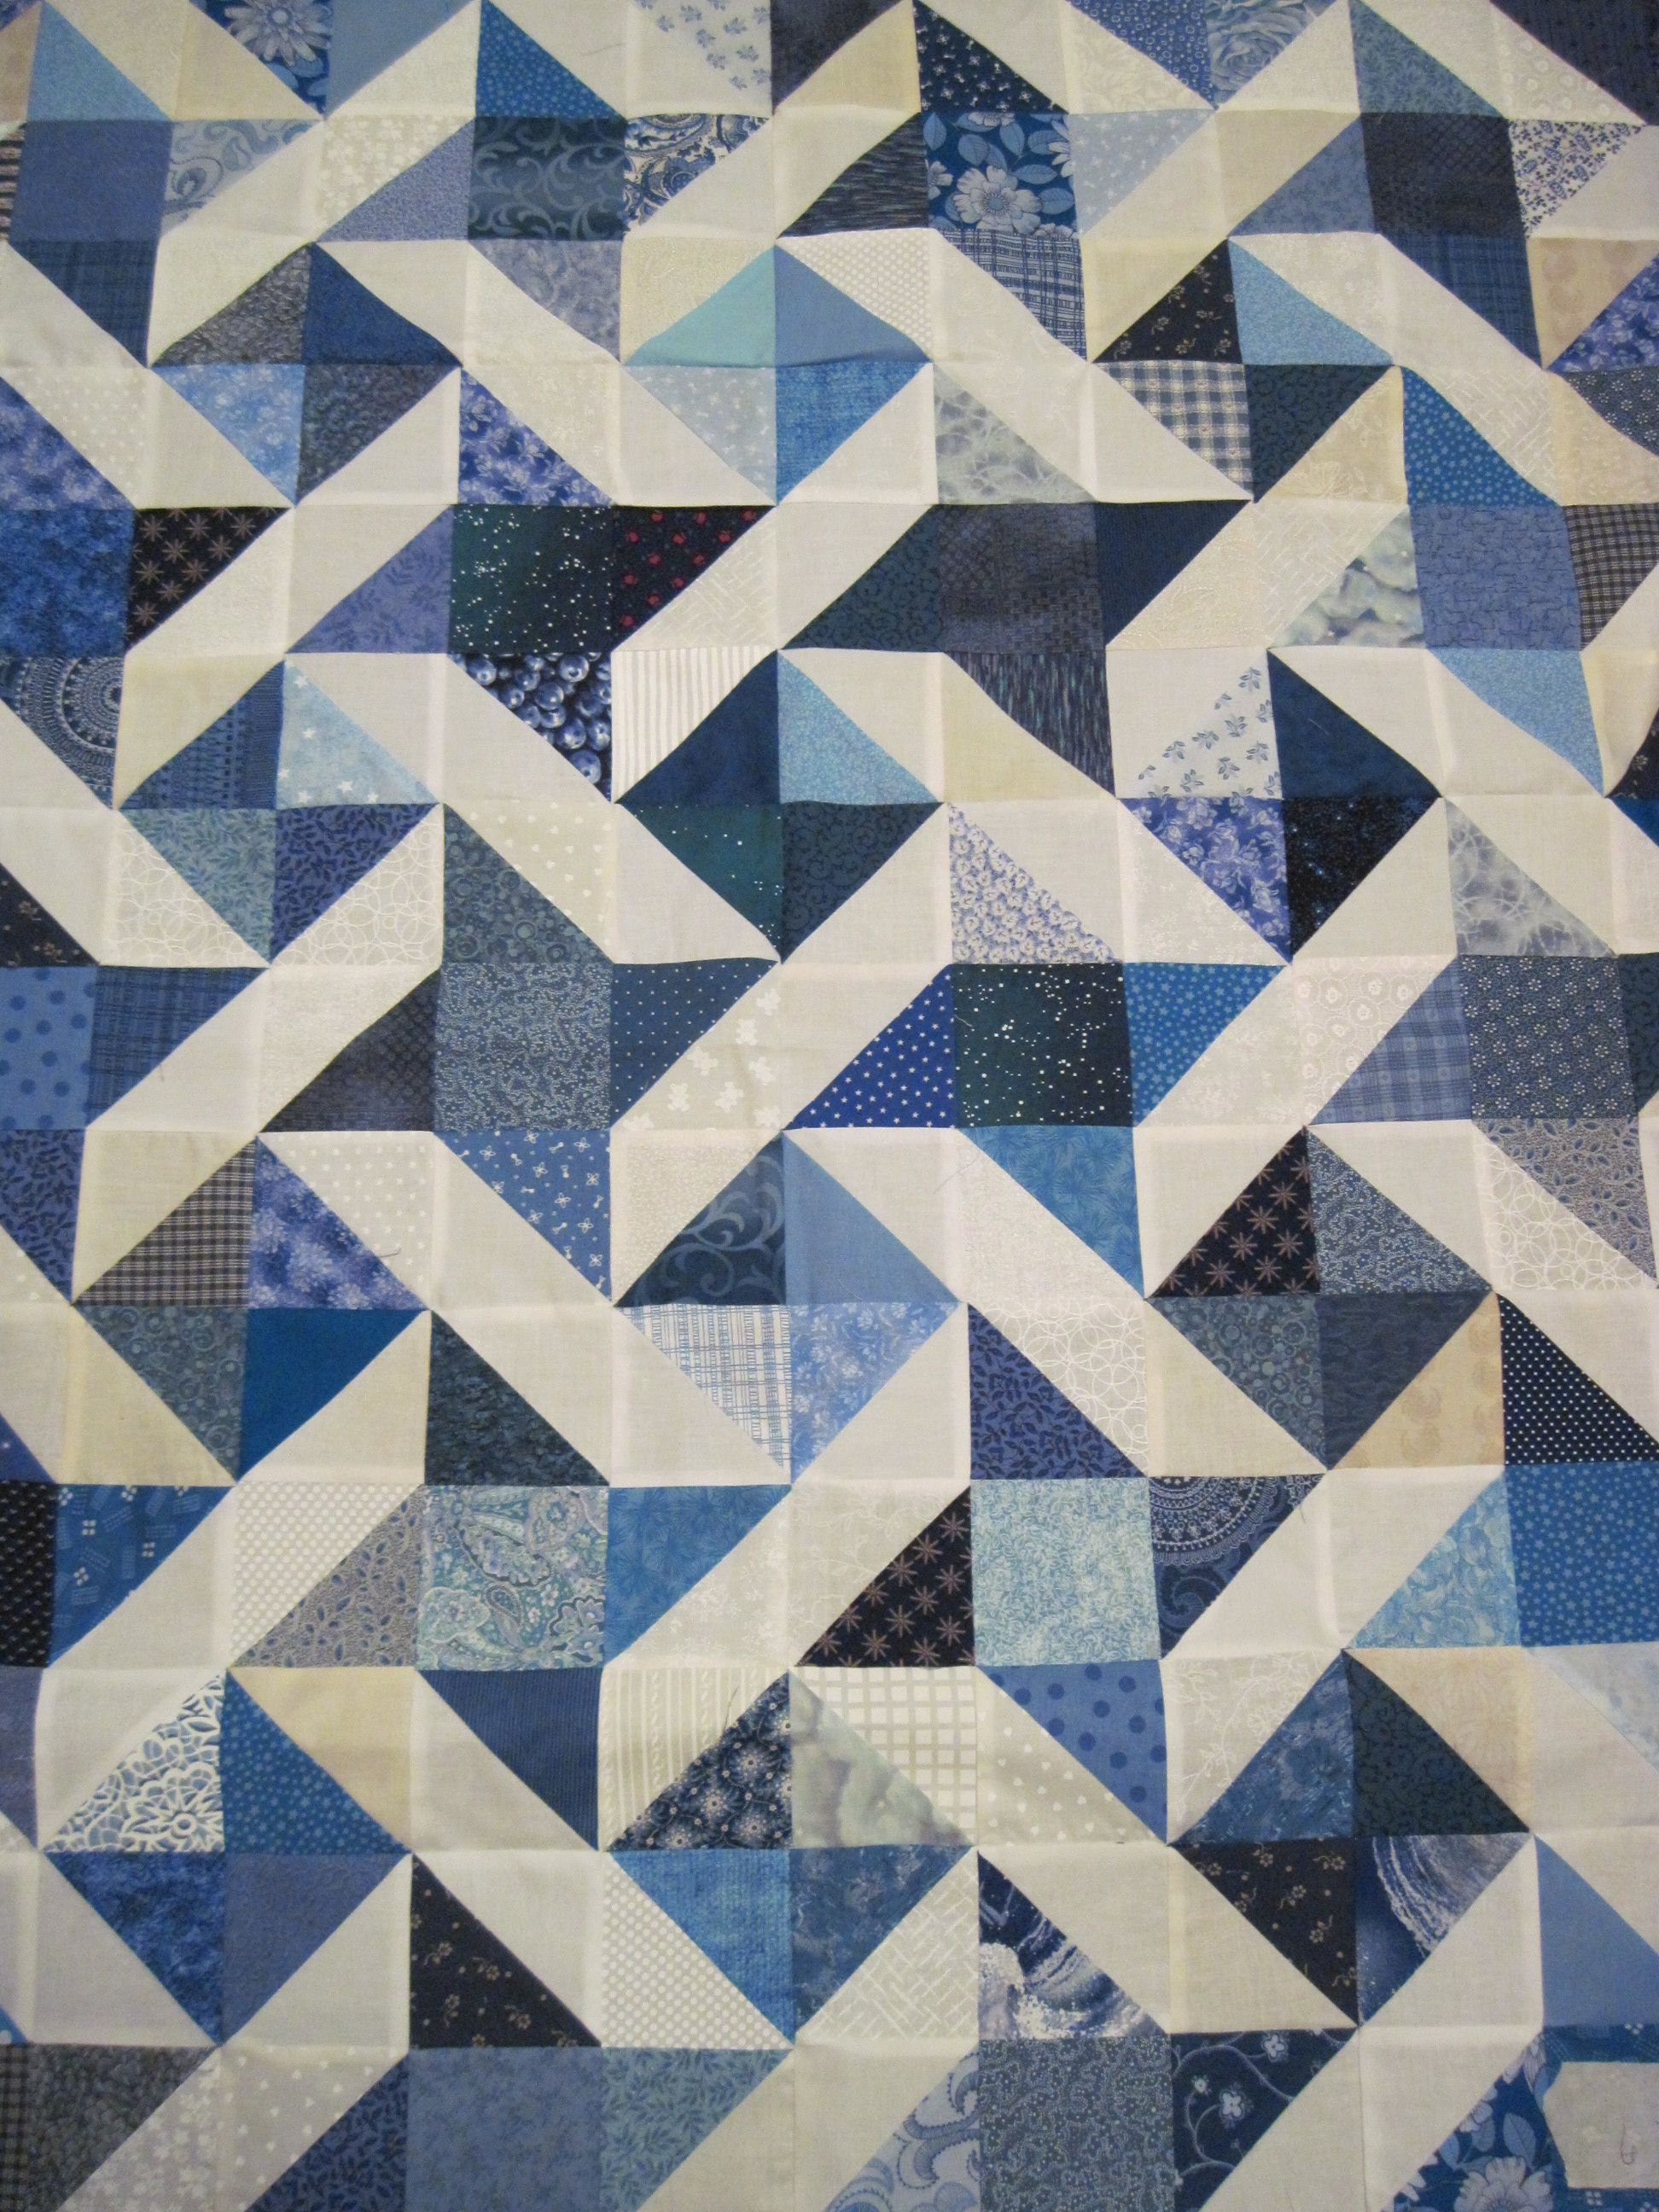 New blue and white quilt